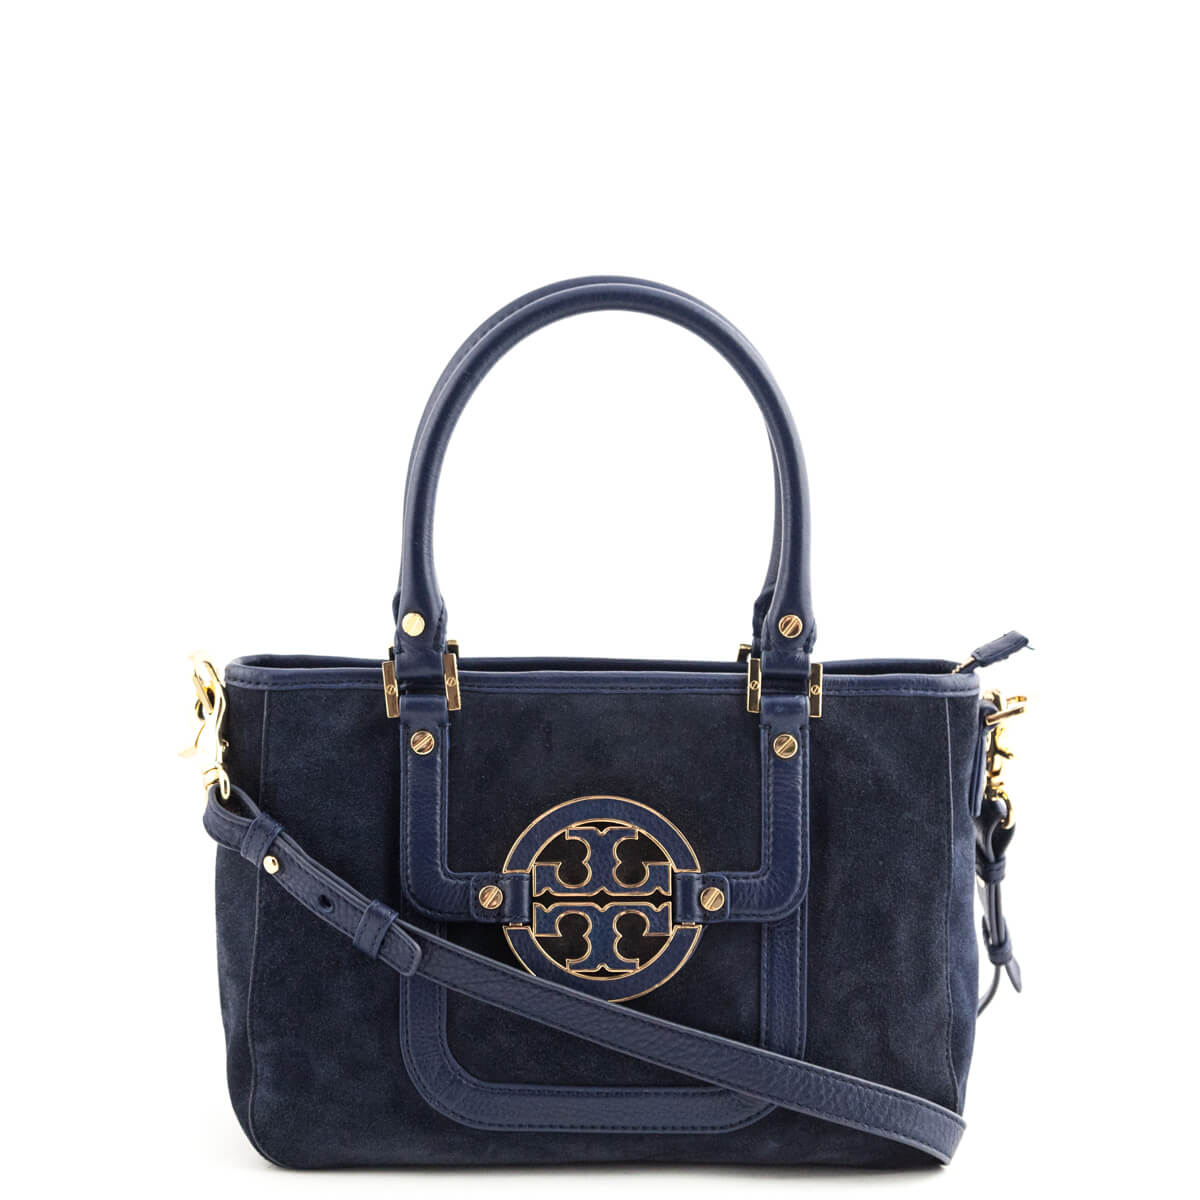 6ddff8a6ccd Tory Burch Navy Suede Amanda Mini Tote - LOVE that BAG - Preowned Authentic  Designer Handbags ...